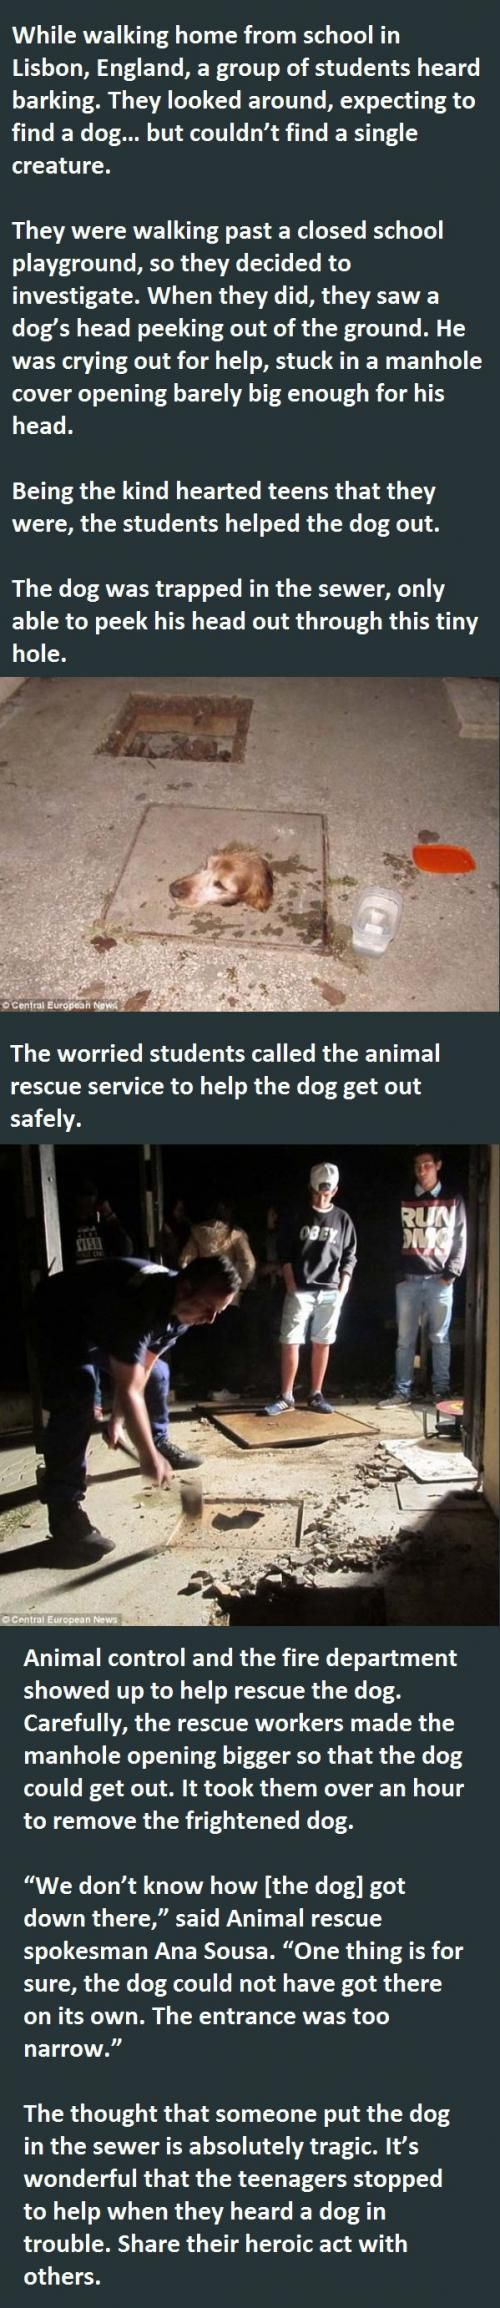 This dog got saved by a group of students.